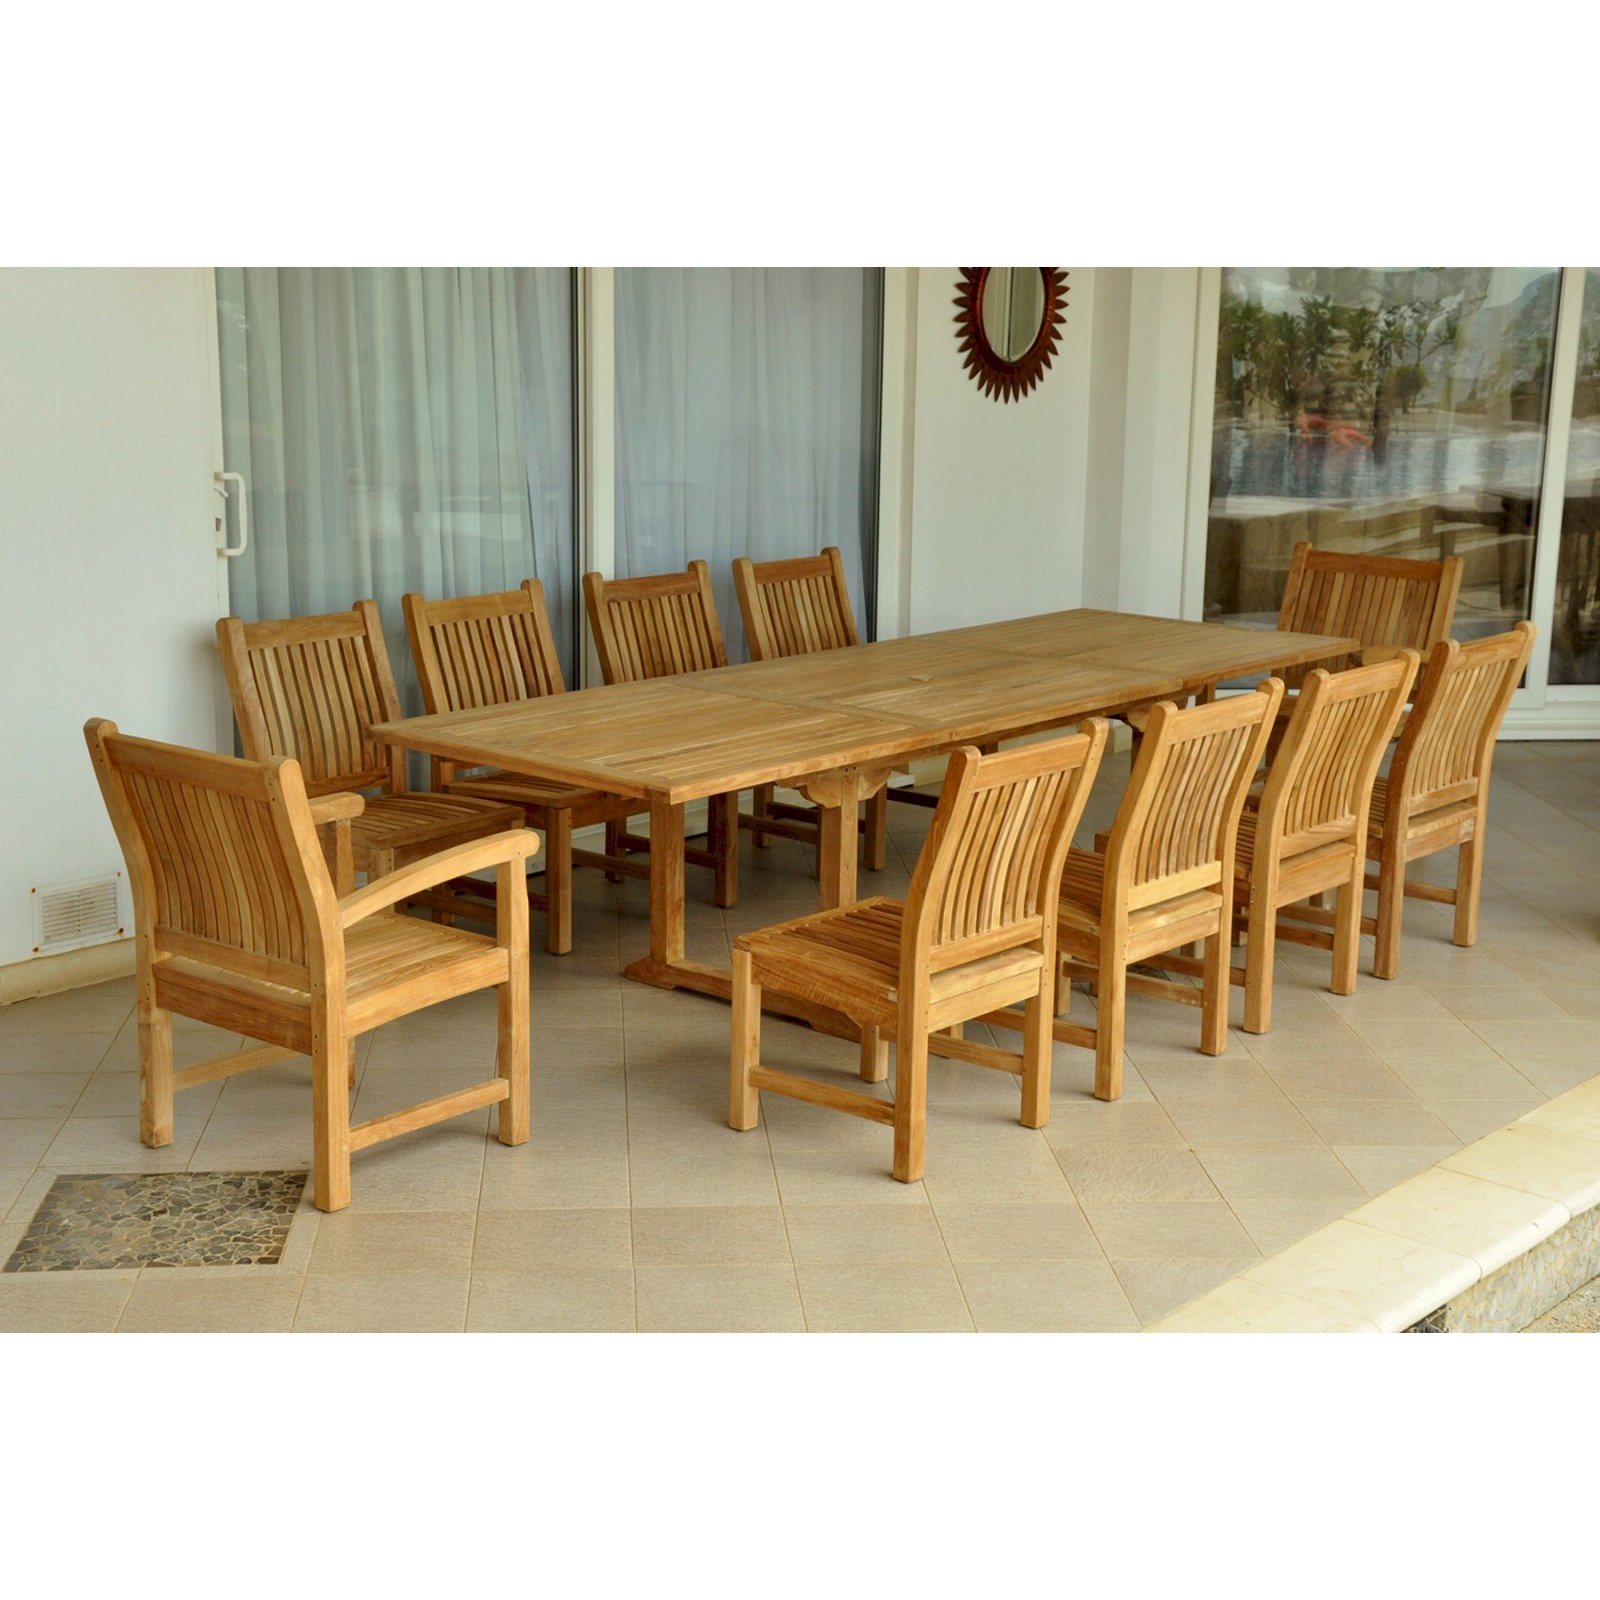 Anderson Teak Sahara 11 Piece Patio Dining Set